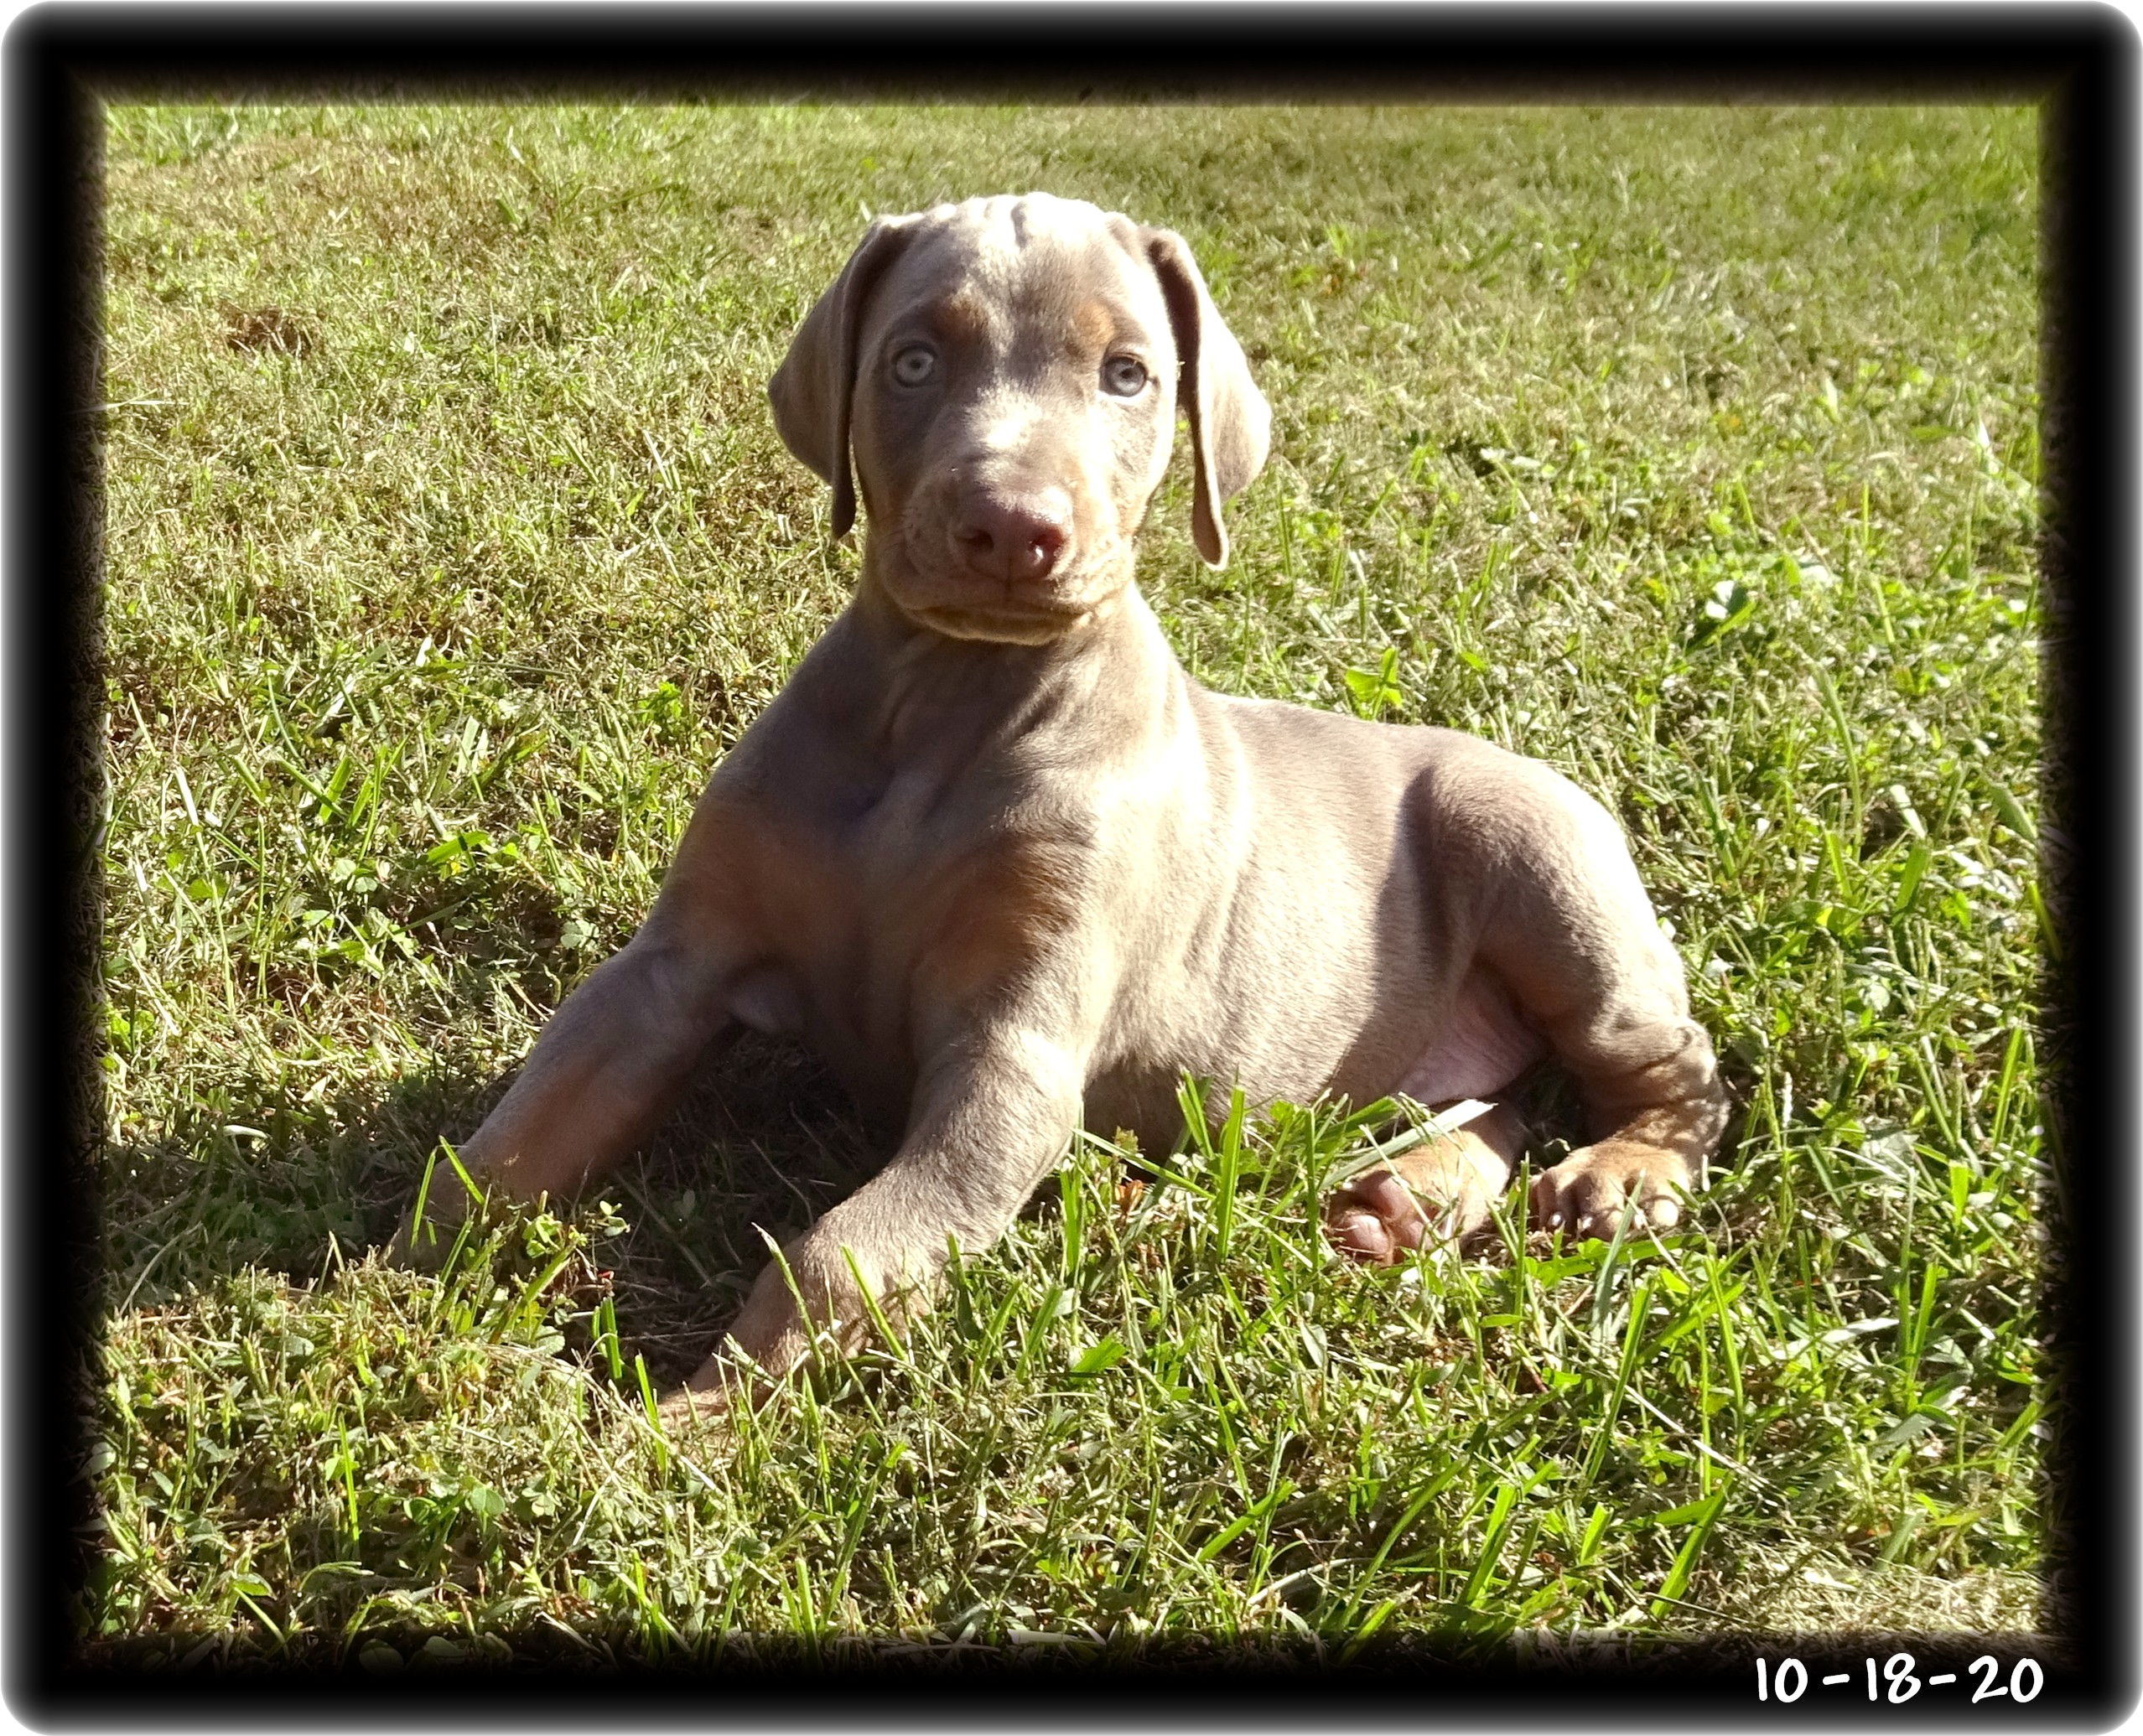 Madison...Shelby pup born 9-3-20 ... One of my blond girls (fawn & rust)- when she joined her new family in Connecticut a handsome Hoytt boy named Briggs was ready with gifts. Halfway meet was arranged.